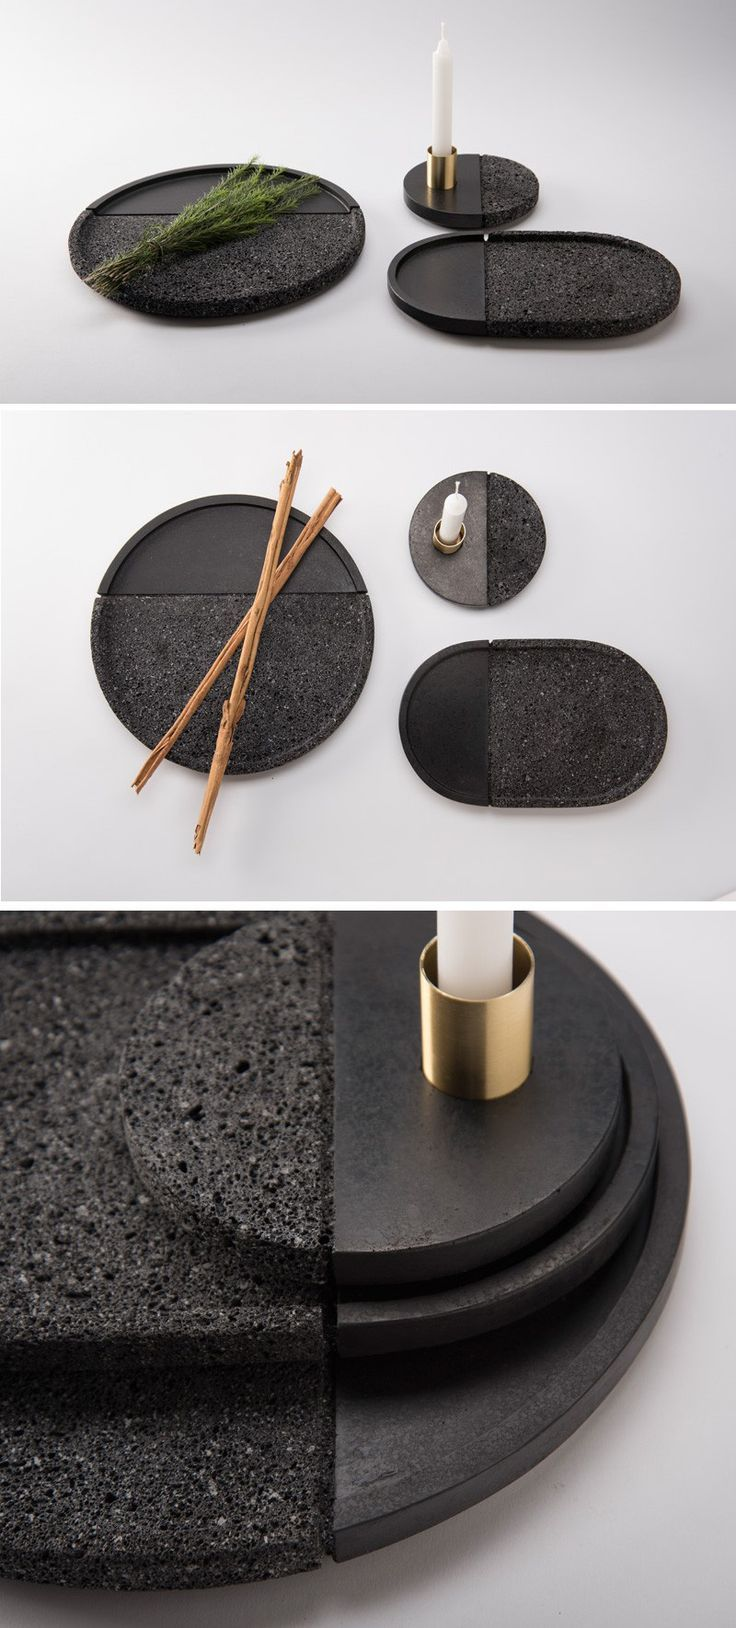 PECA have designed LAVA, a set of decorative plates carved from volcanic stone with a brass accent.